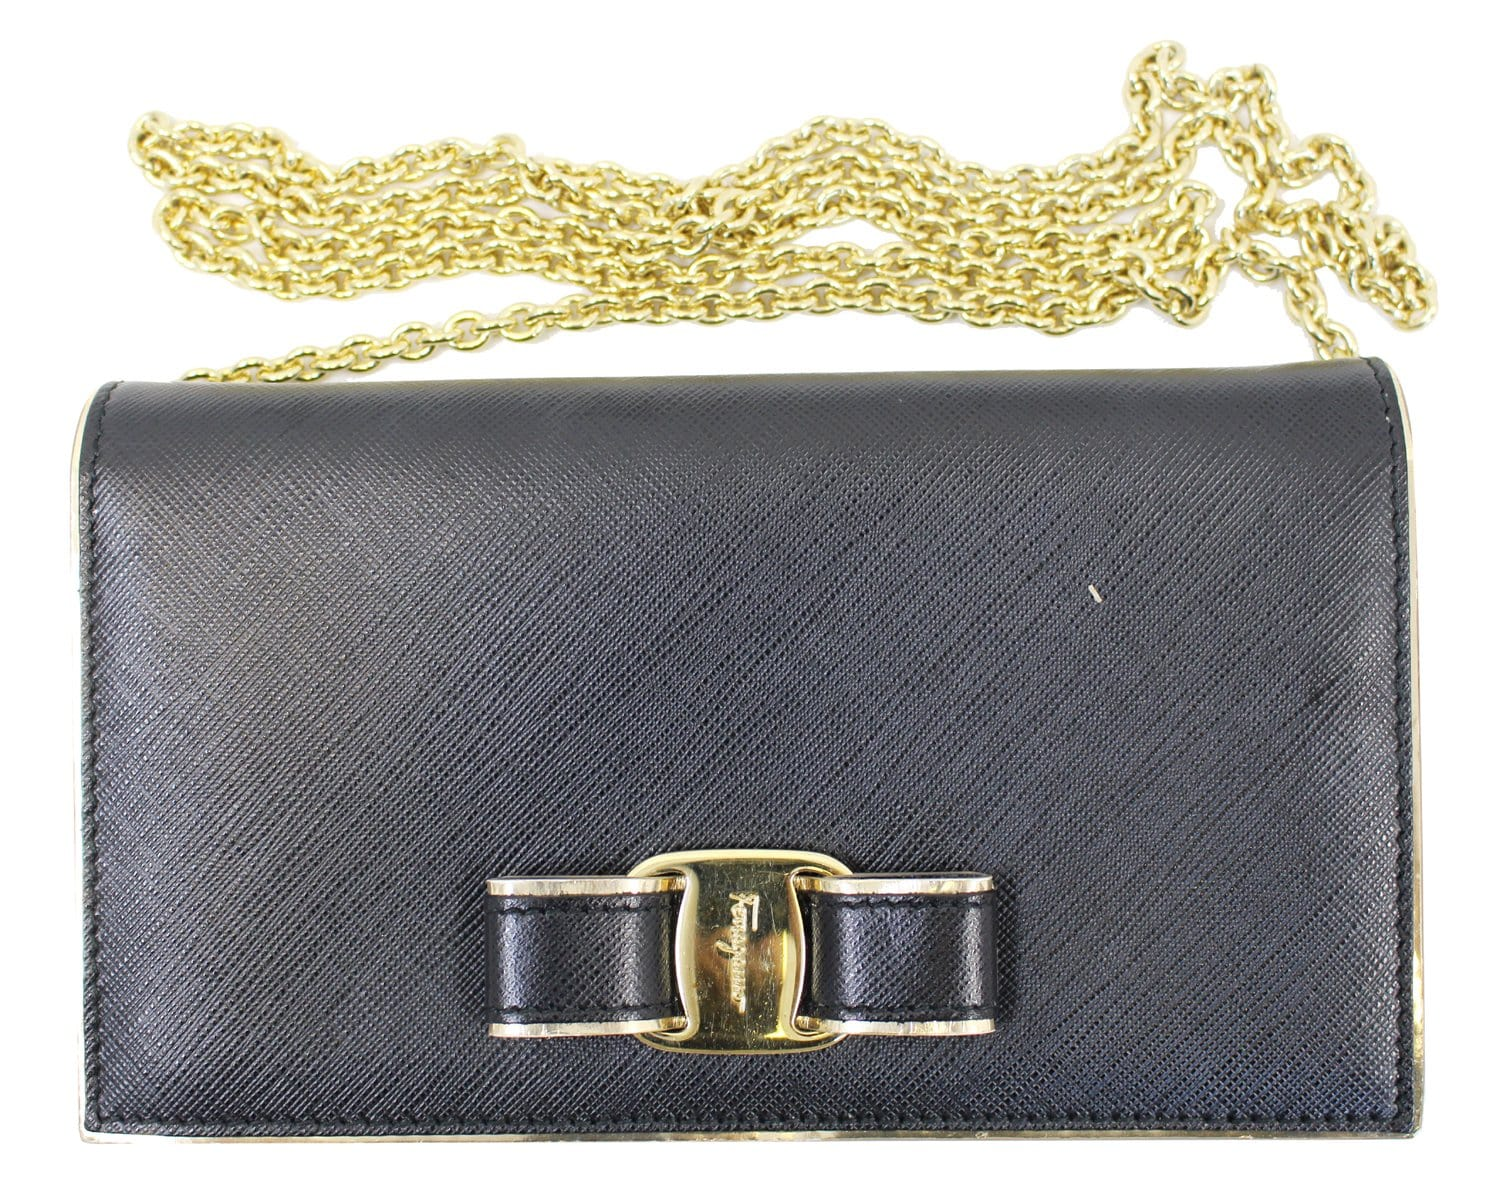 SALVATORE FERRAGAMO Miss Vara Bow Saffiano Leather Wallet Crossbody ... cbacb316c744f